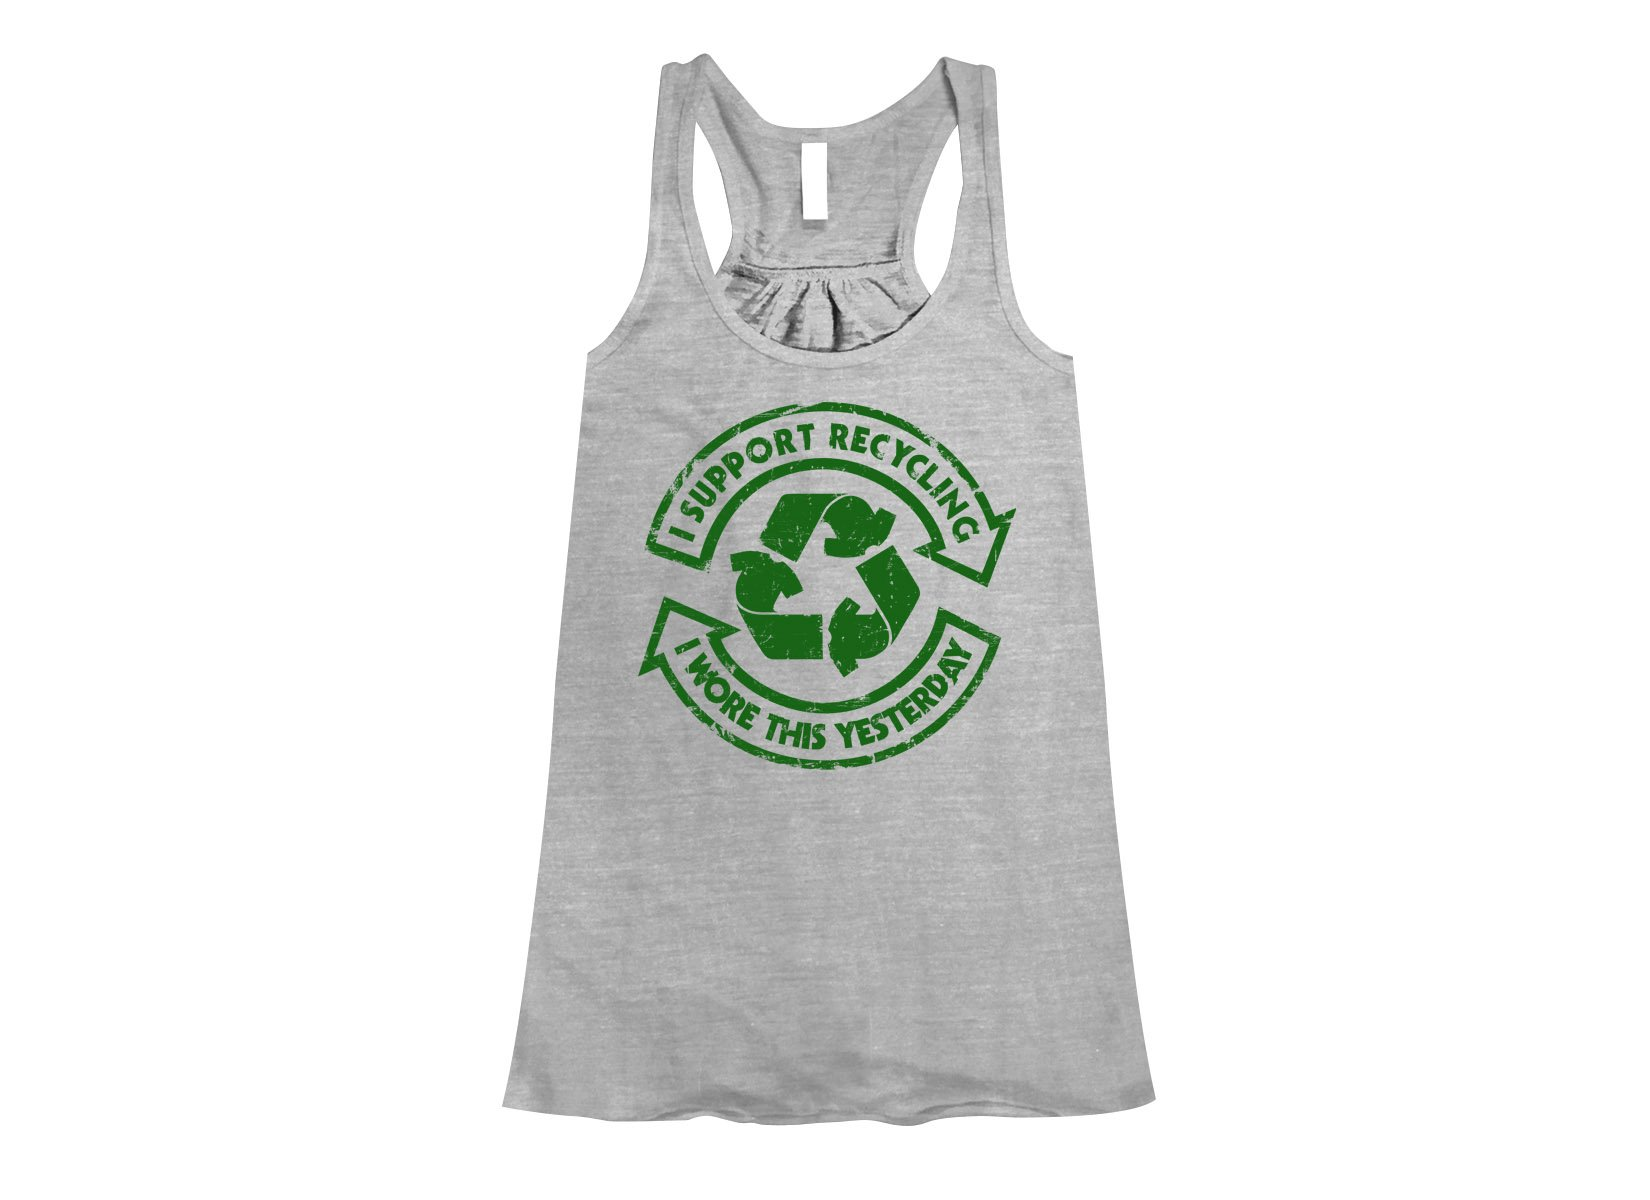 I Support Recycling on Womens Tanks T-Shirt